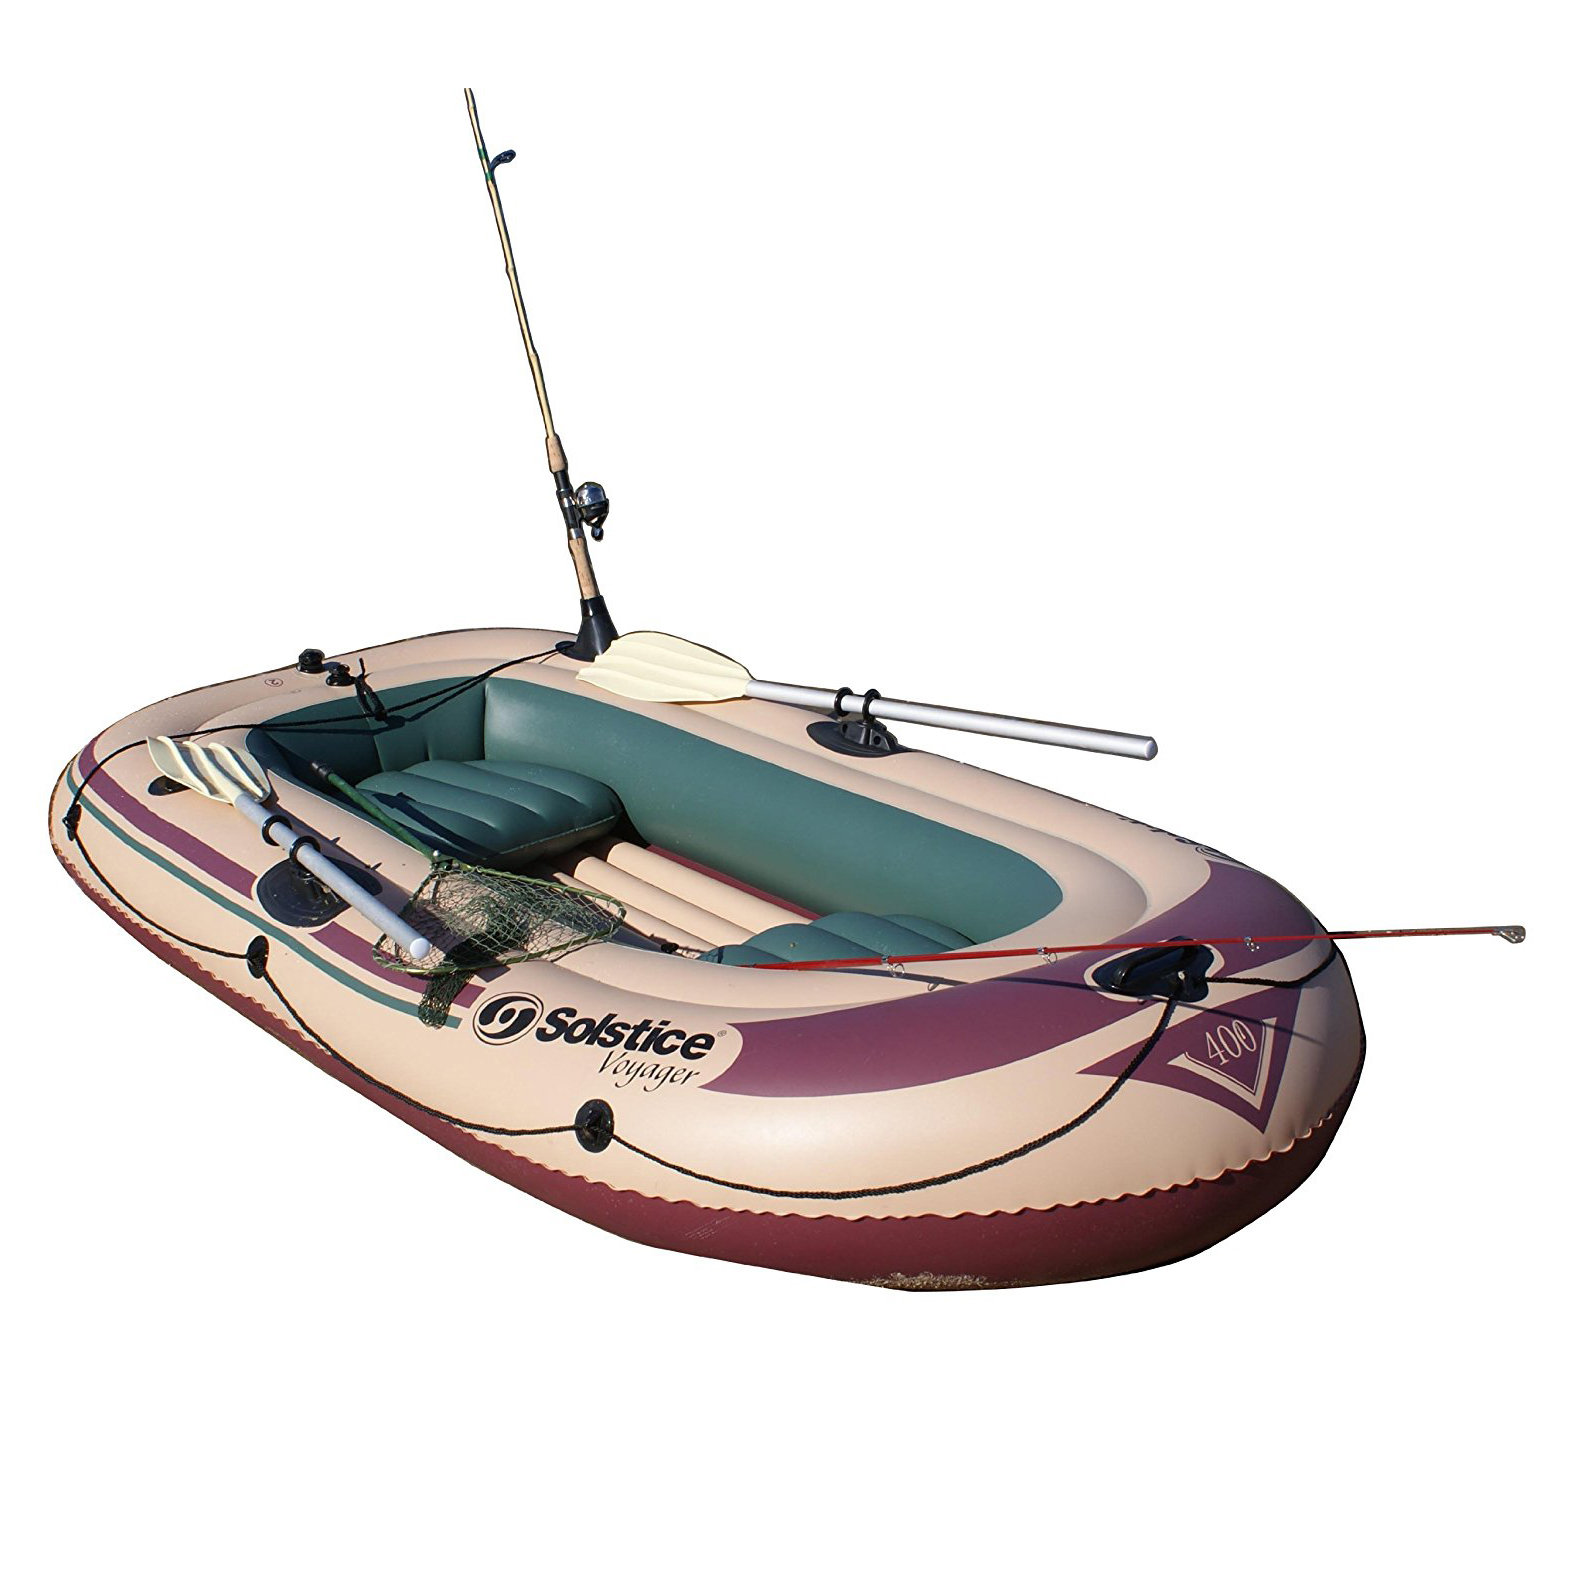 Solstice Swimline Voyager 30400 Inflatable 4 Person Fishing Leisure Boat Raft by Swimline